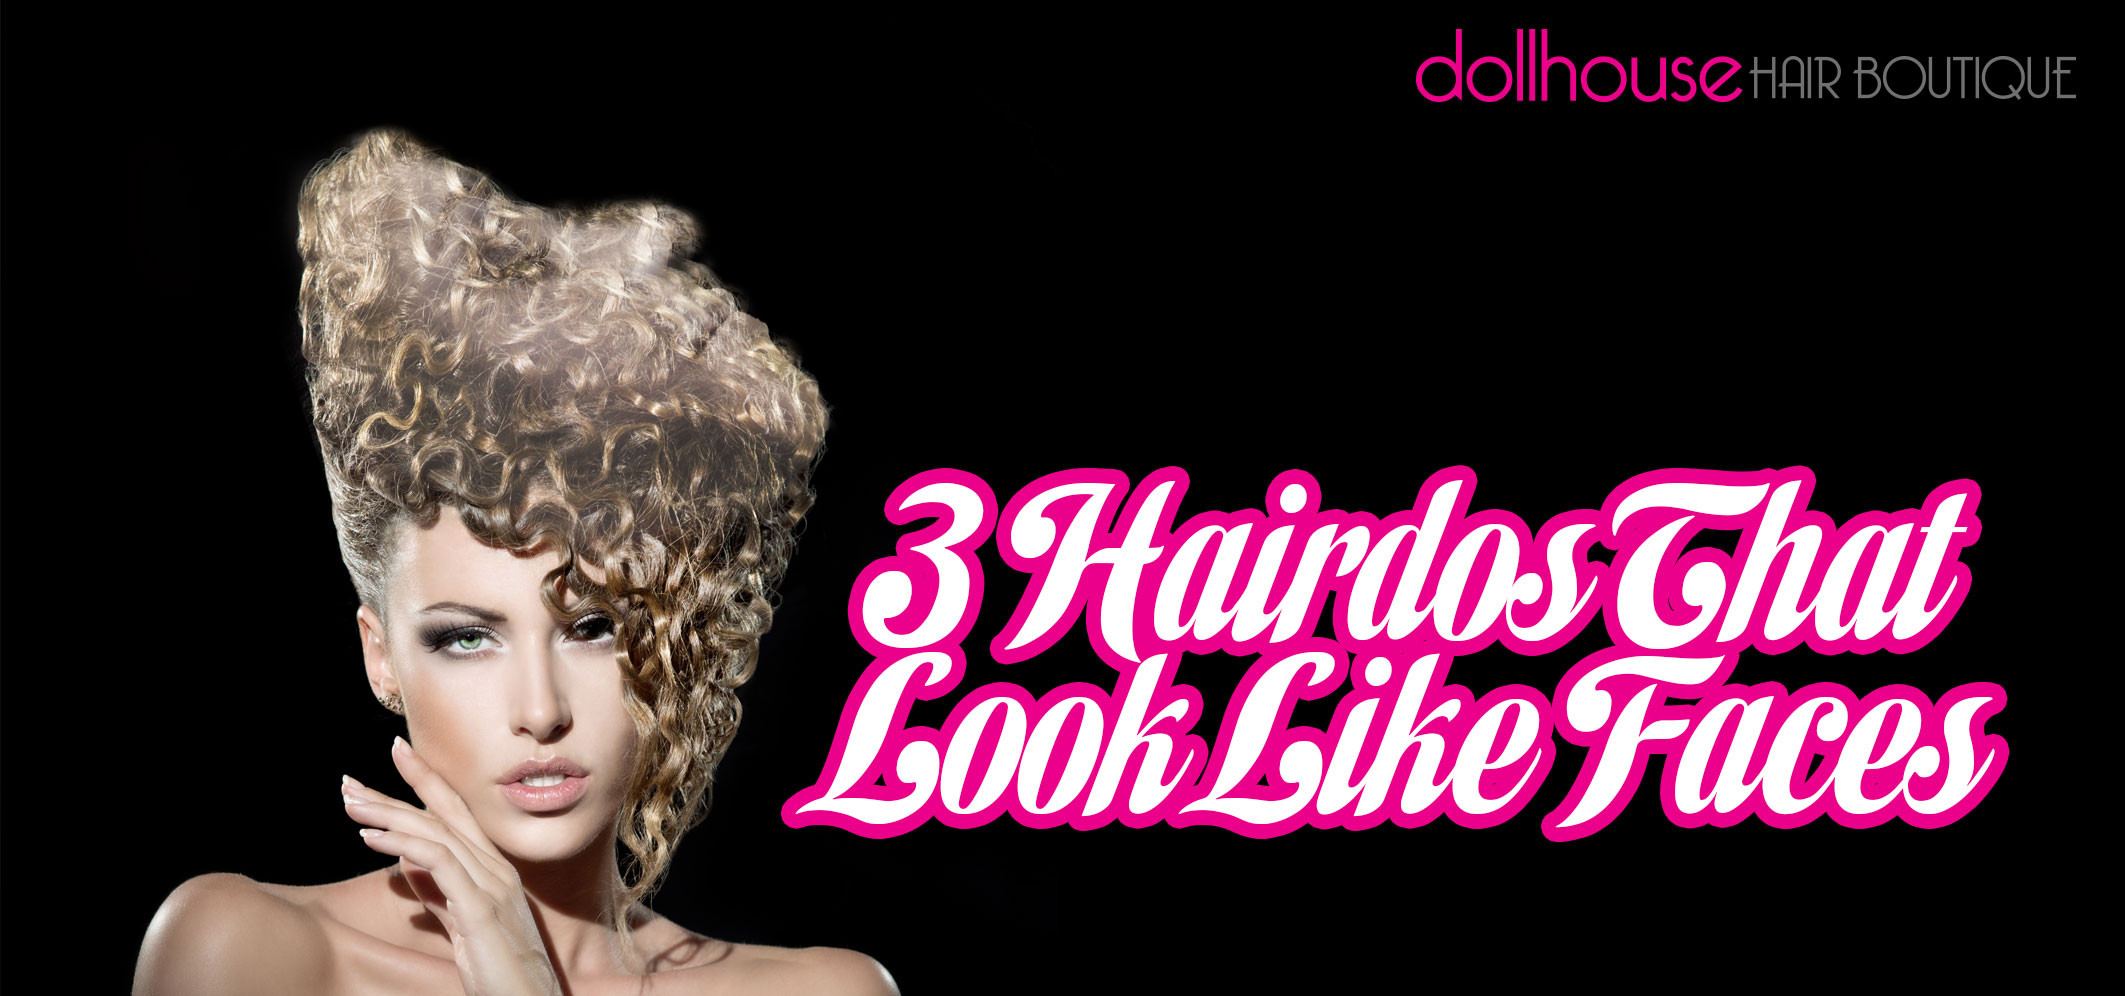 3-hairdos-that-look-like-faces